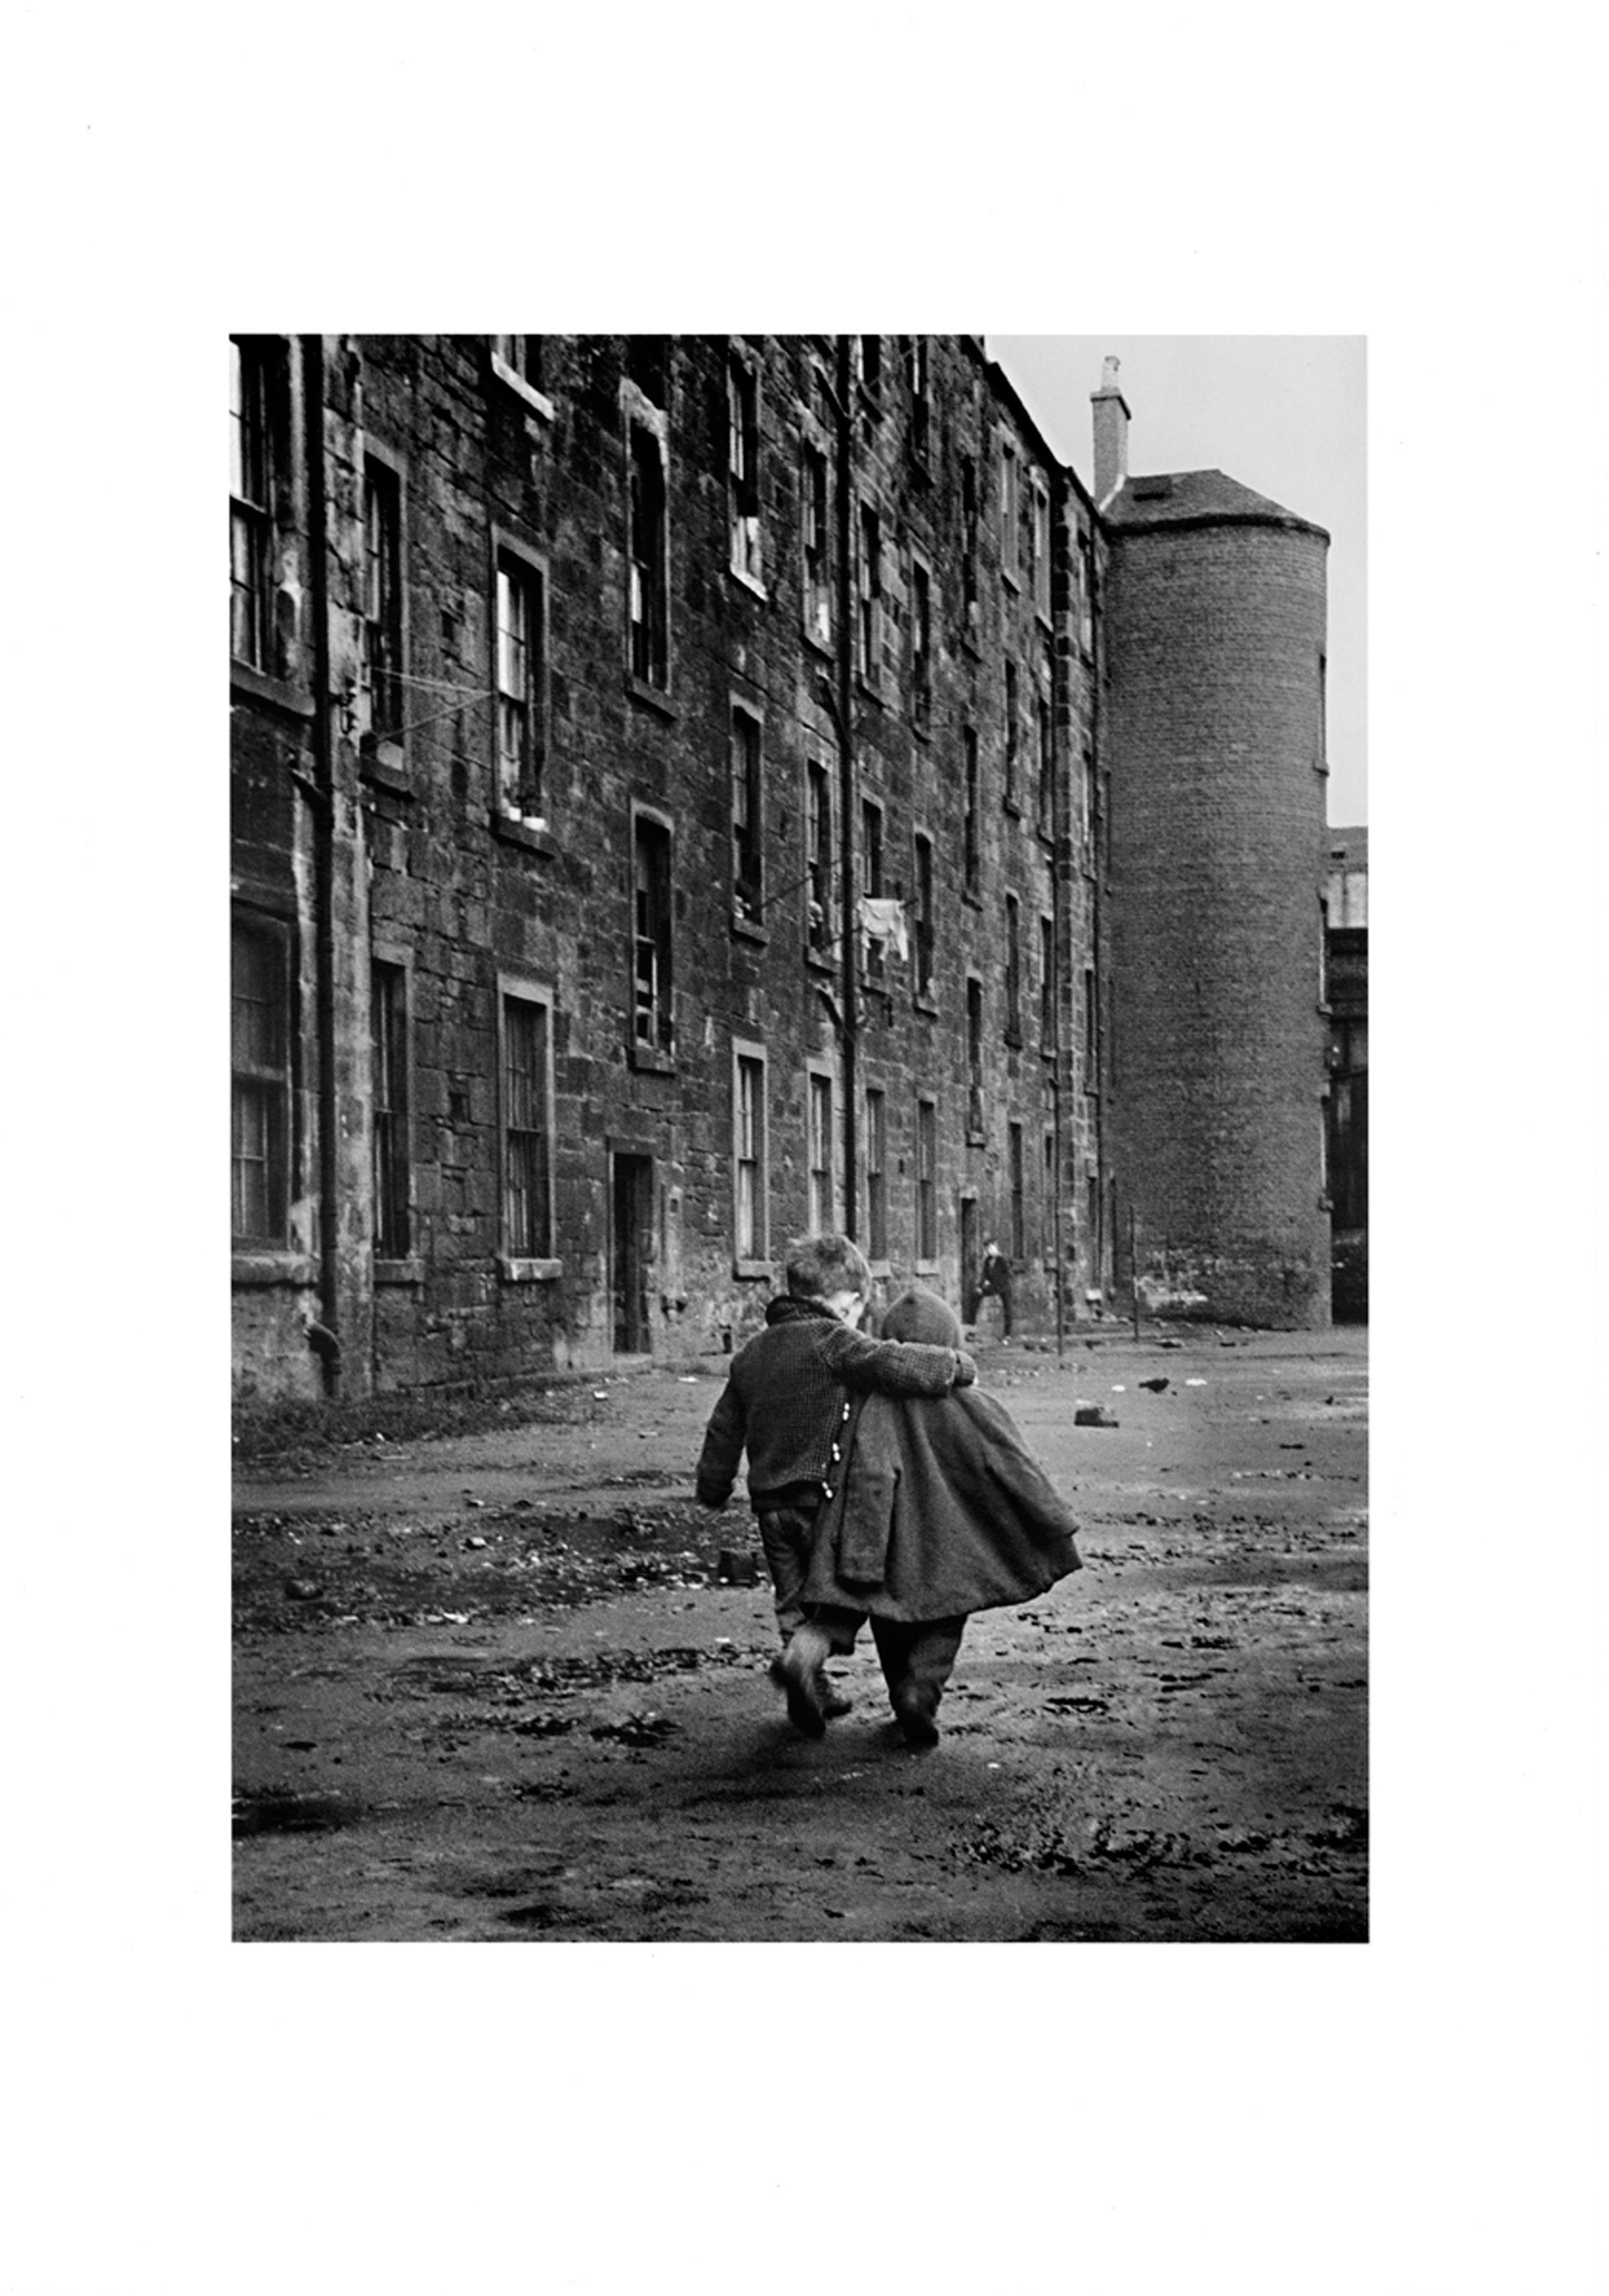 Image of Comforting Arm, Glasgow 1968 / Published by Renaissance Press by David Peat